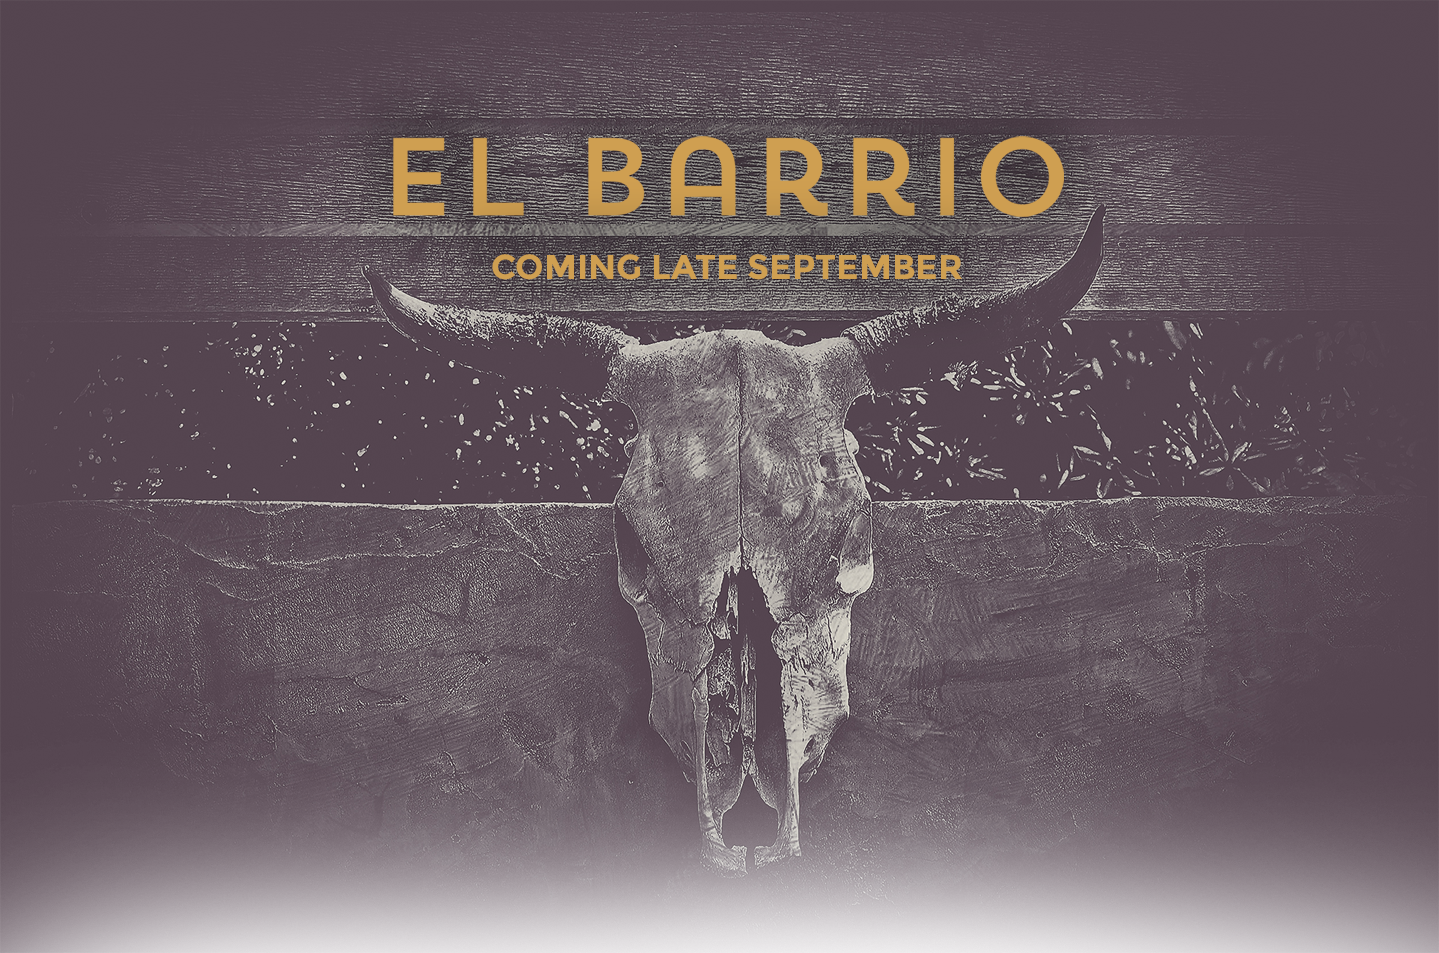 El Barrio Mexican Modern Cocktail Bar will open in Guerneville in September